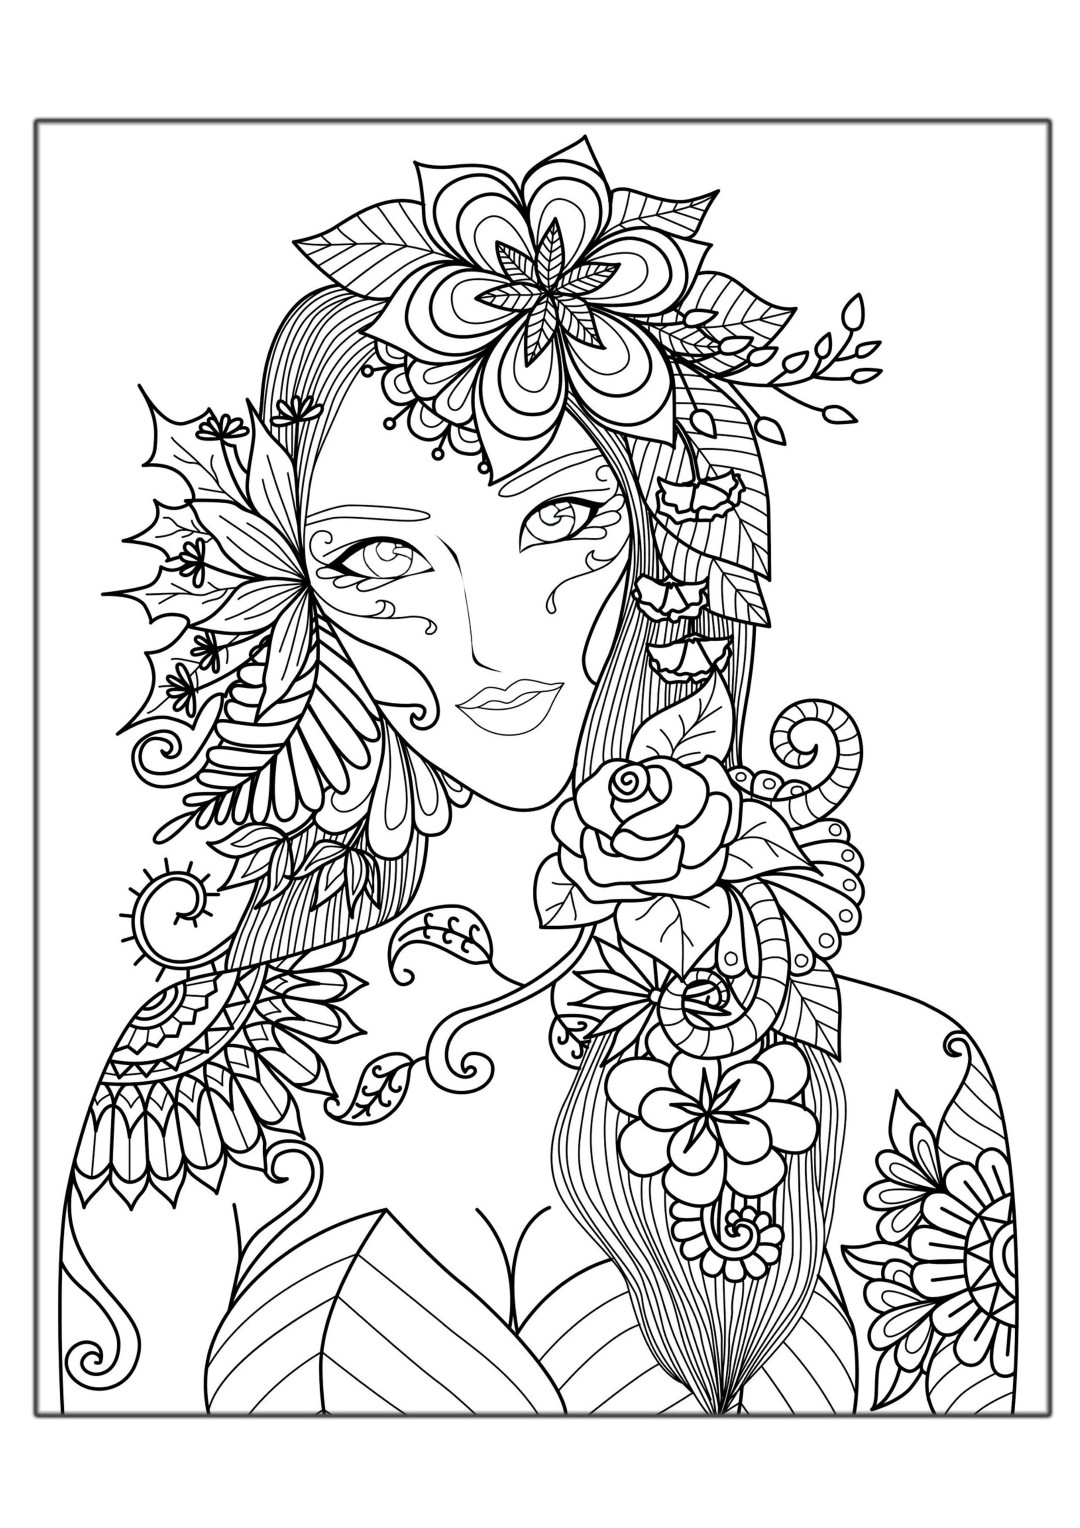 Woman with Flowers Coloring Page for Adults